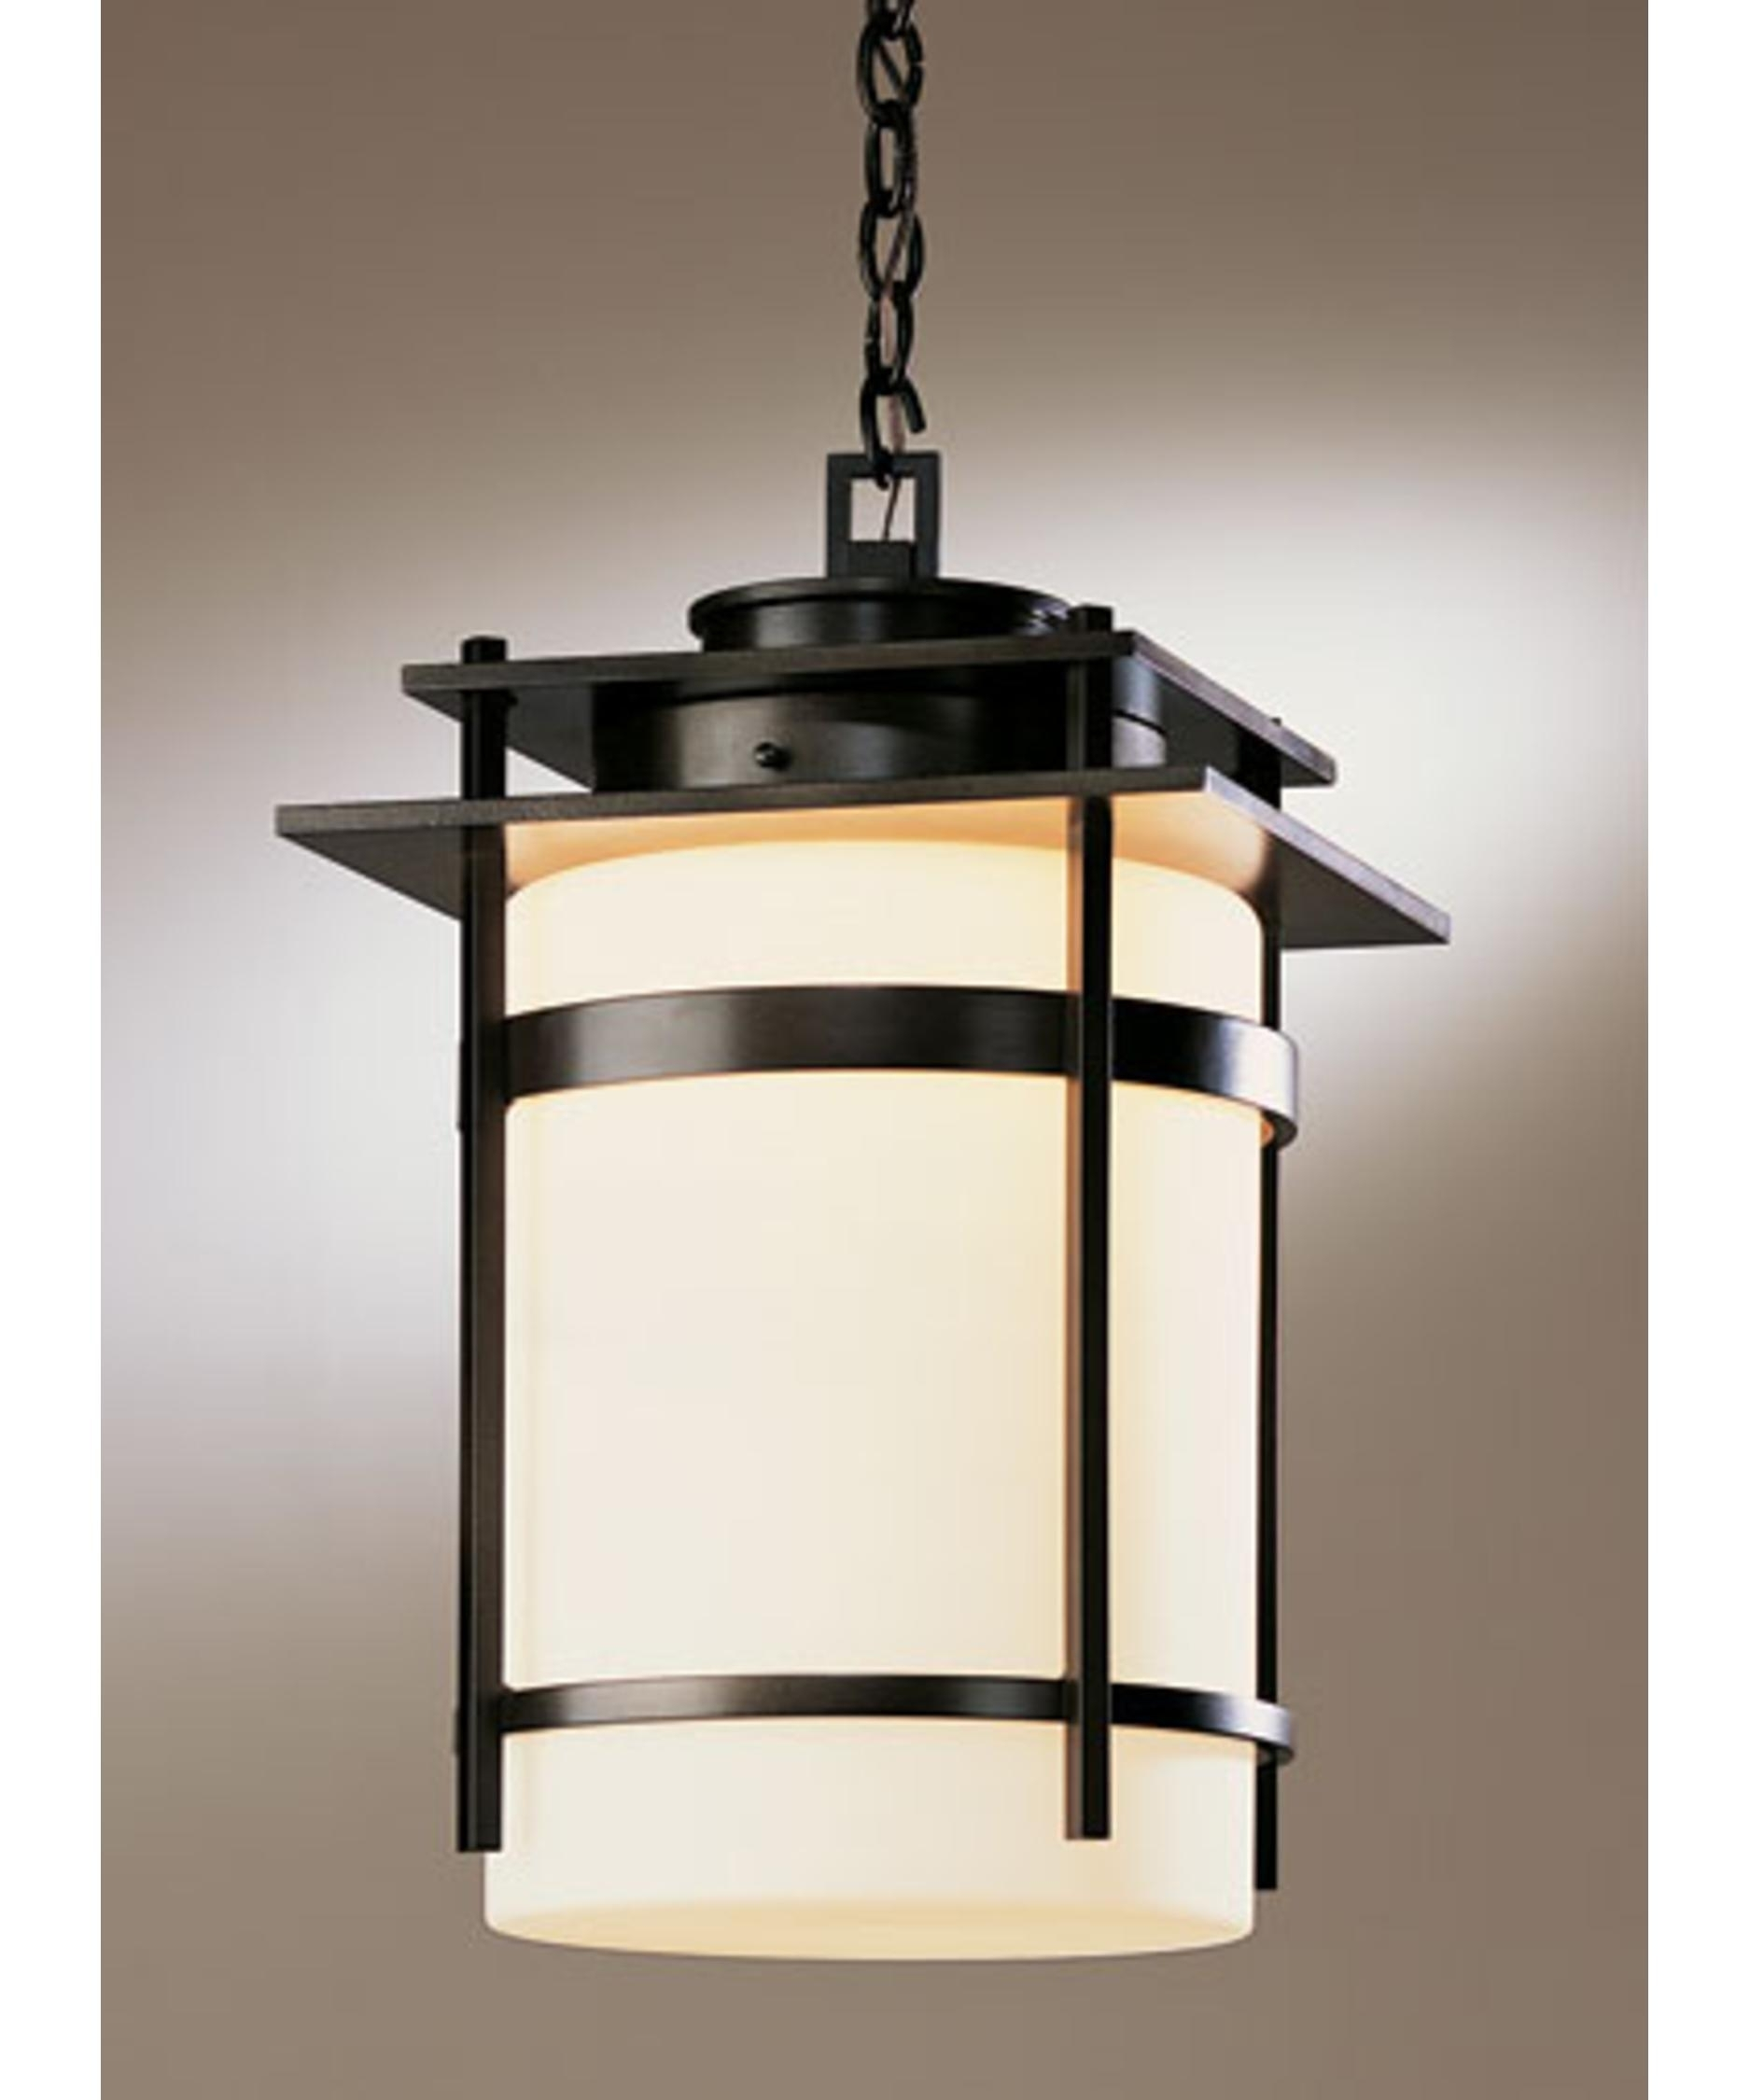 Hanging Gas Light Fixture: 15 Best Collection Of Outdoor Hanging Lights Masters